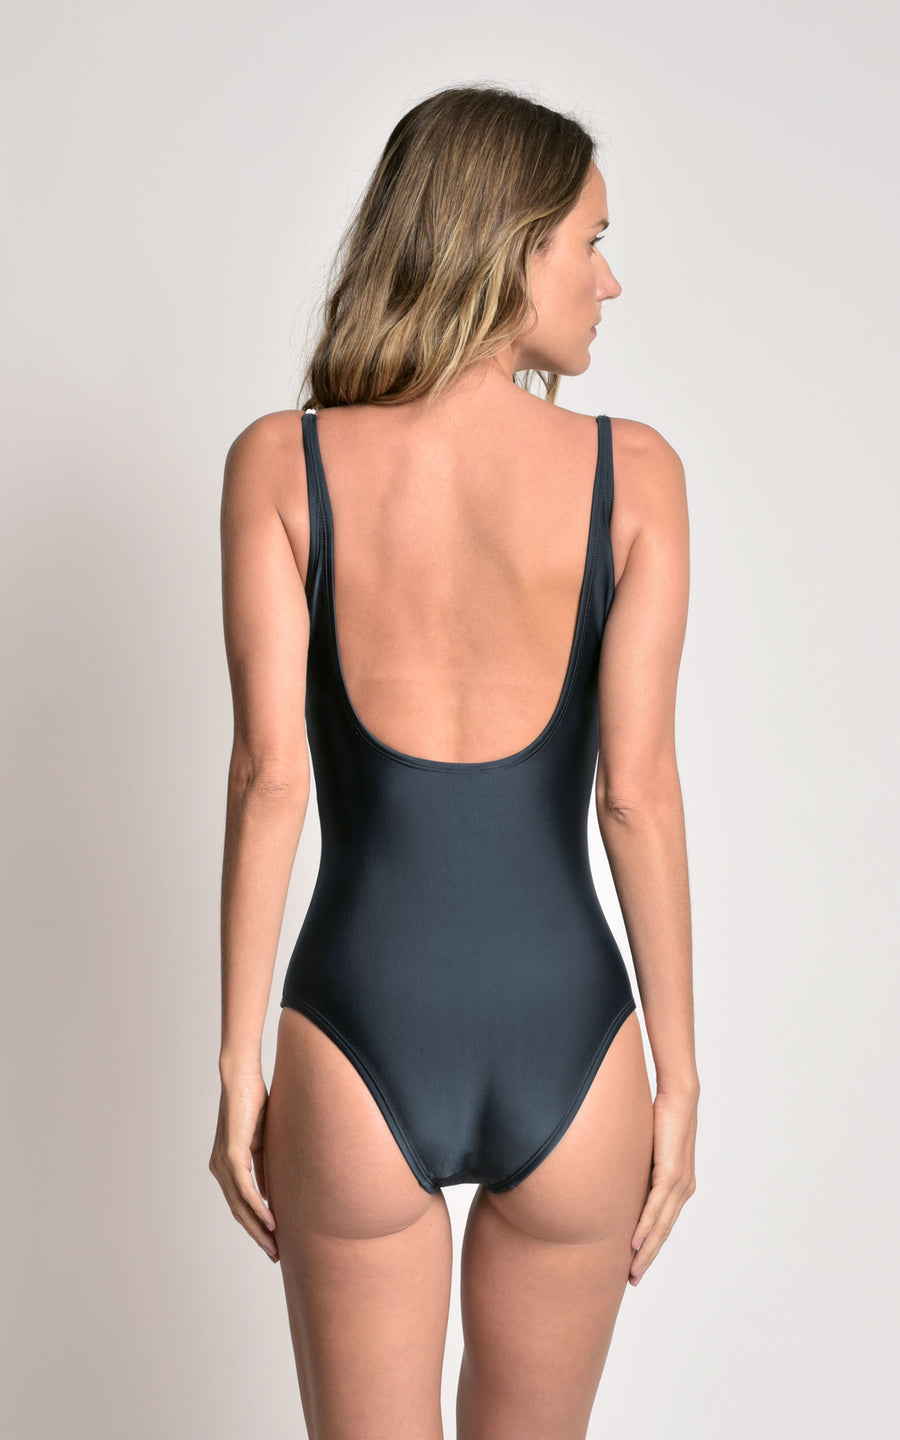 Mikonos Nautical Basic One Piece Swimsuit